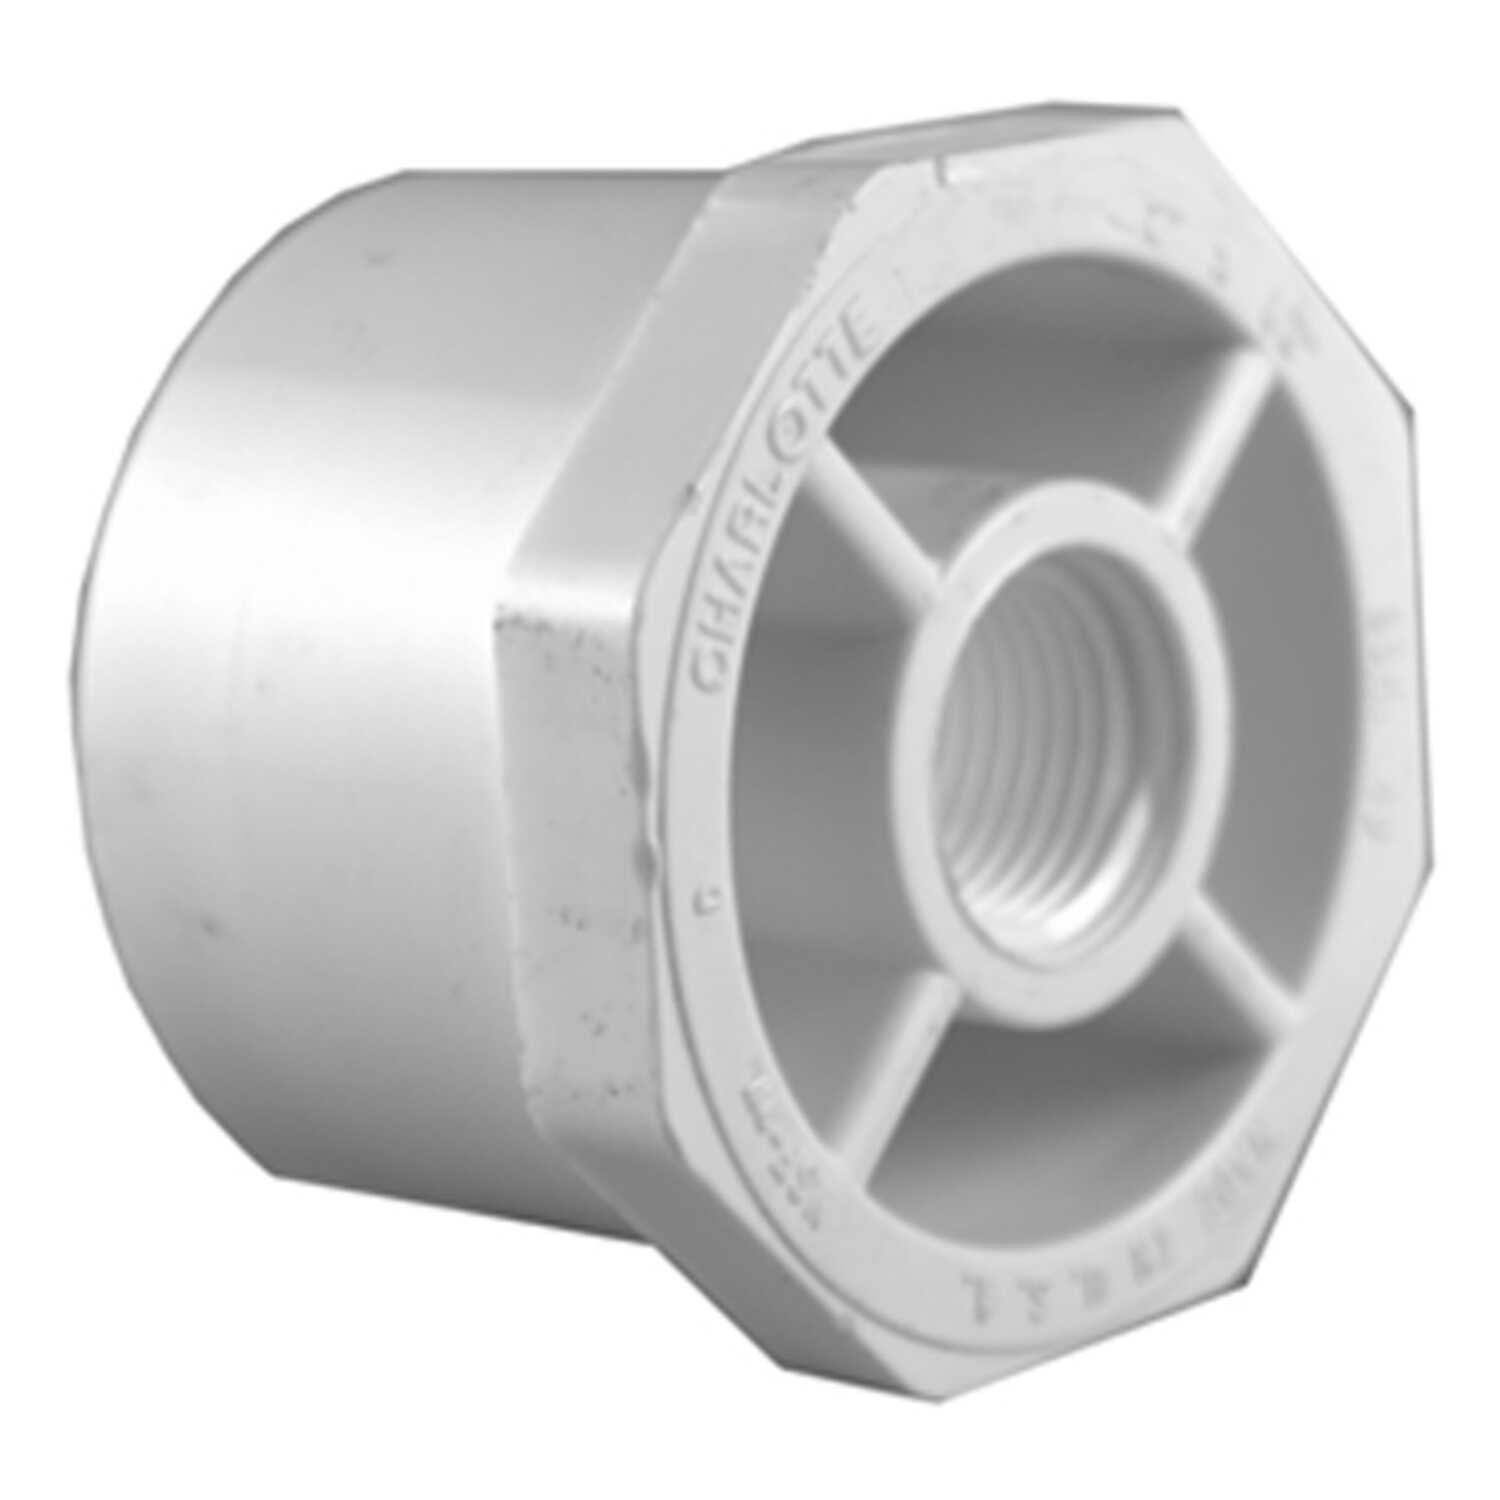 Charlotte Pipe  Schedule 40  2 in. Spigot   x 1 in. Dia. FPT  PVC  Reducing Bushing